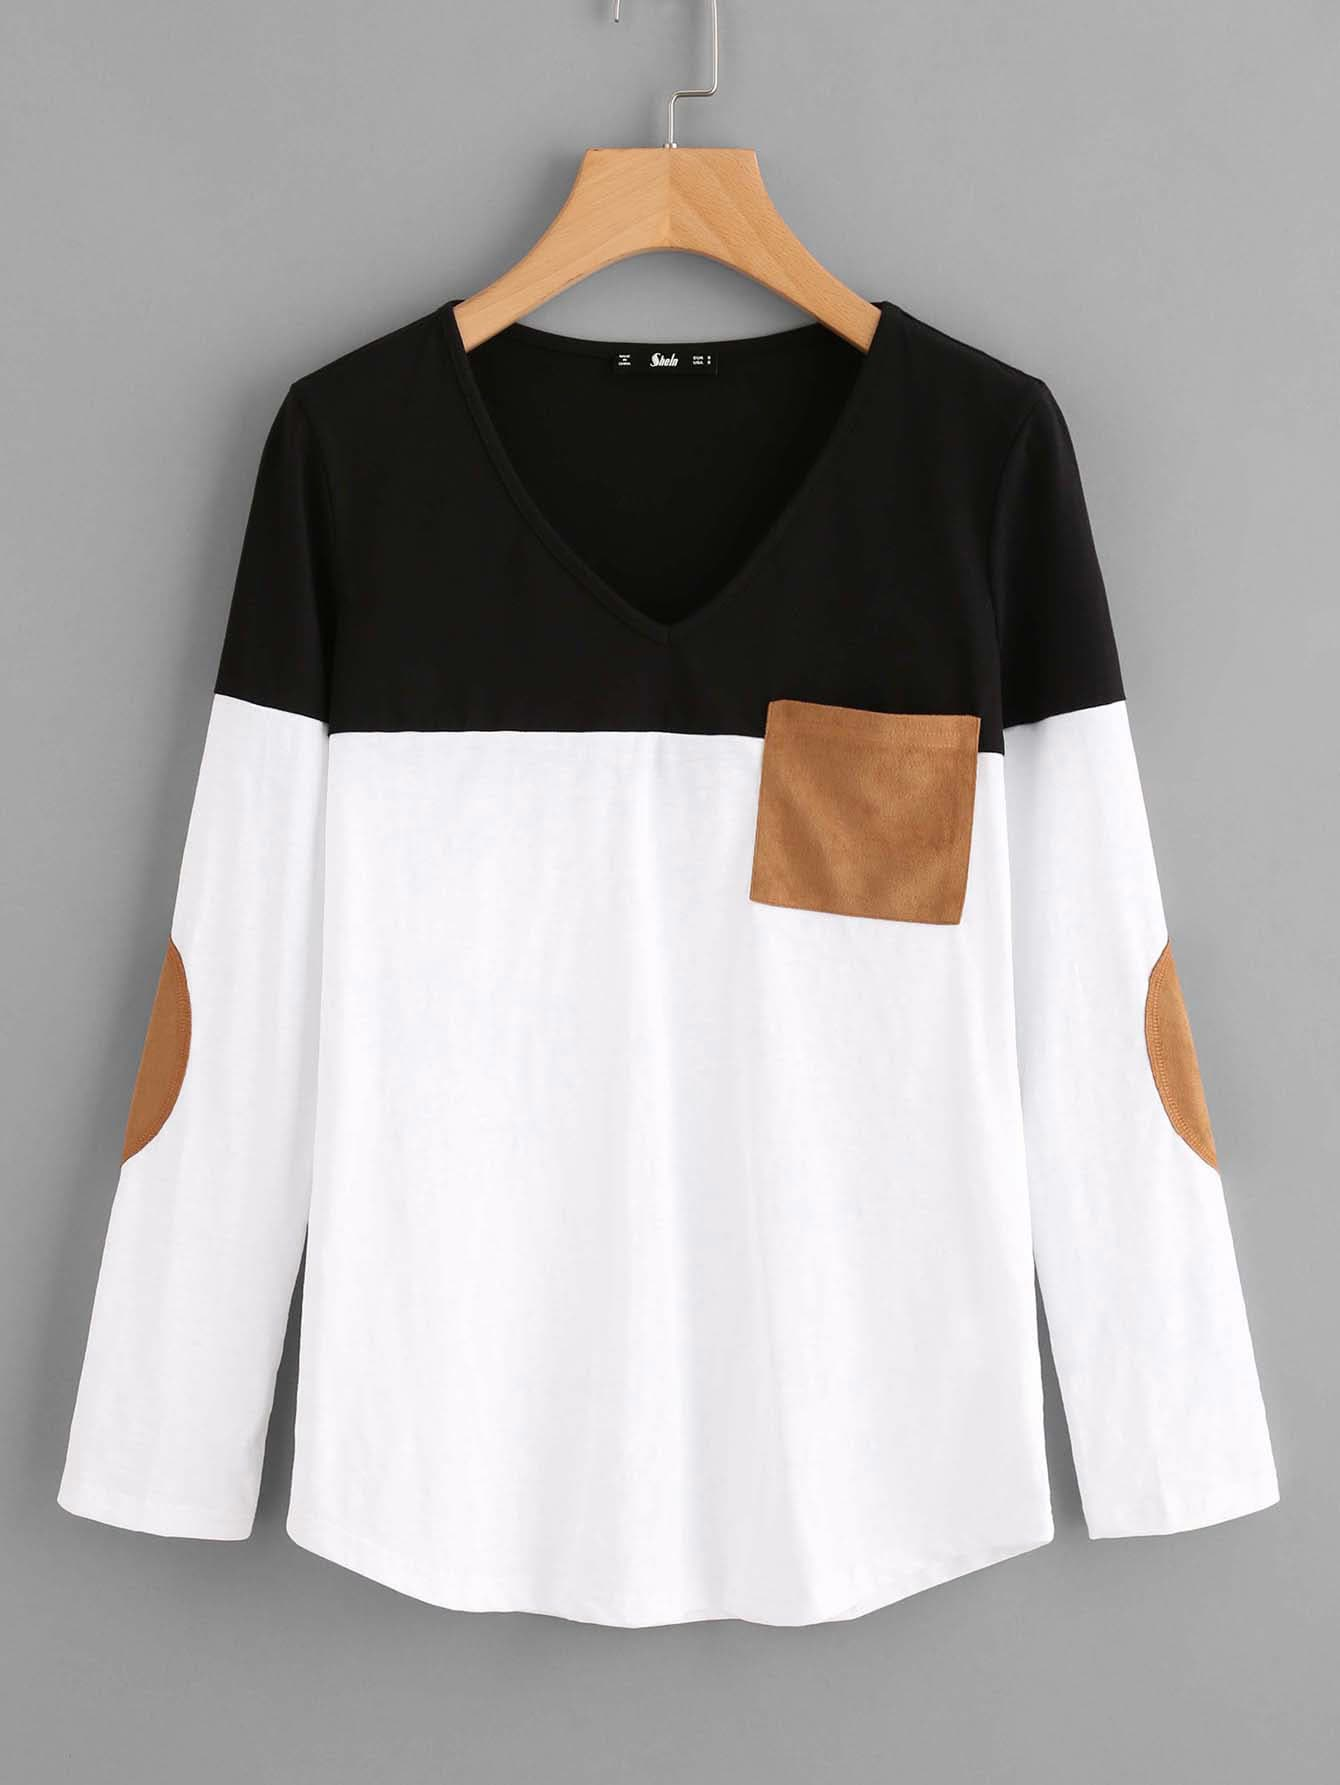 Suede Pocket And Elbow Patch Cut And Sew Tee cut and sew chiffon tee